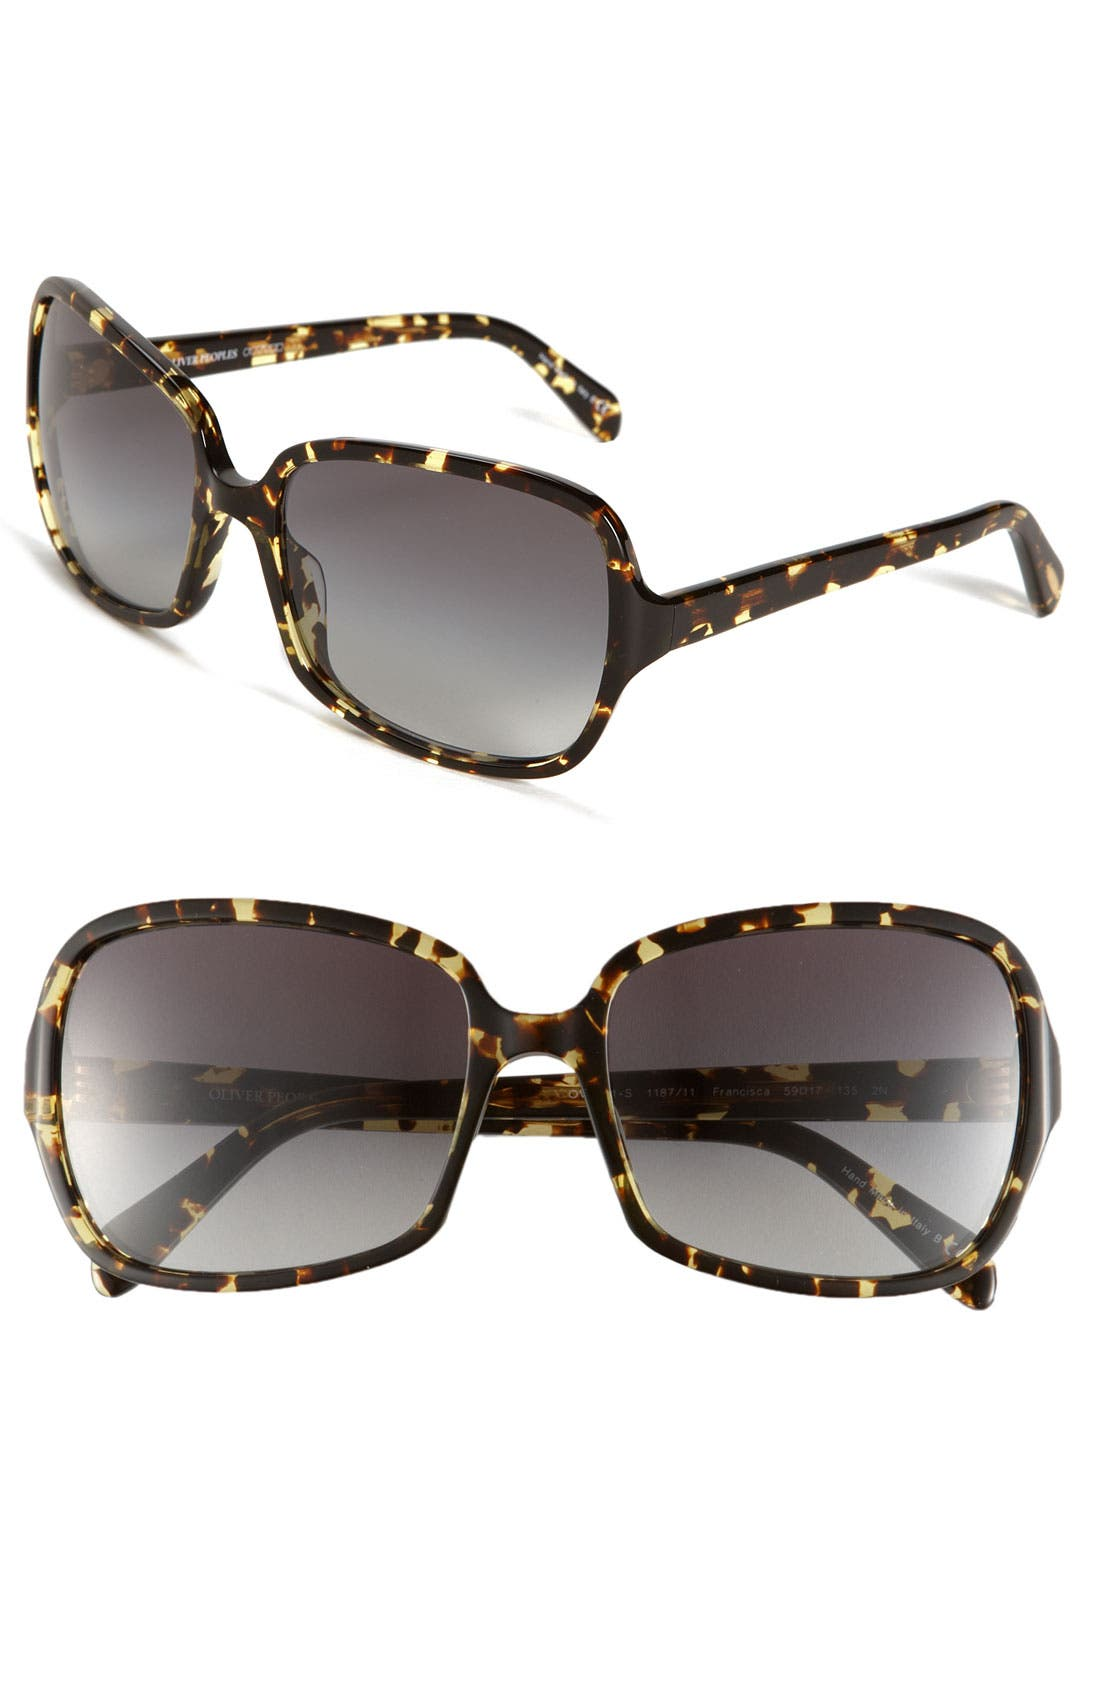 Alternate Image 1 Selected - Oliver Peoples 'Francisca' 59mm Retro Sunglasses